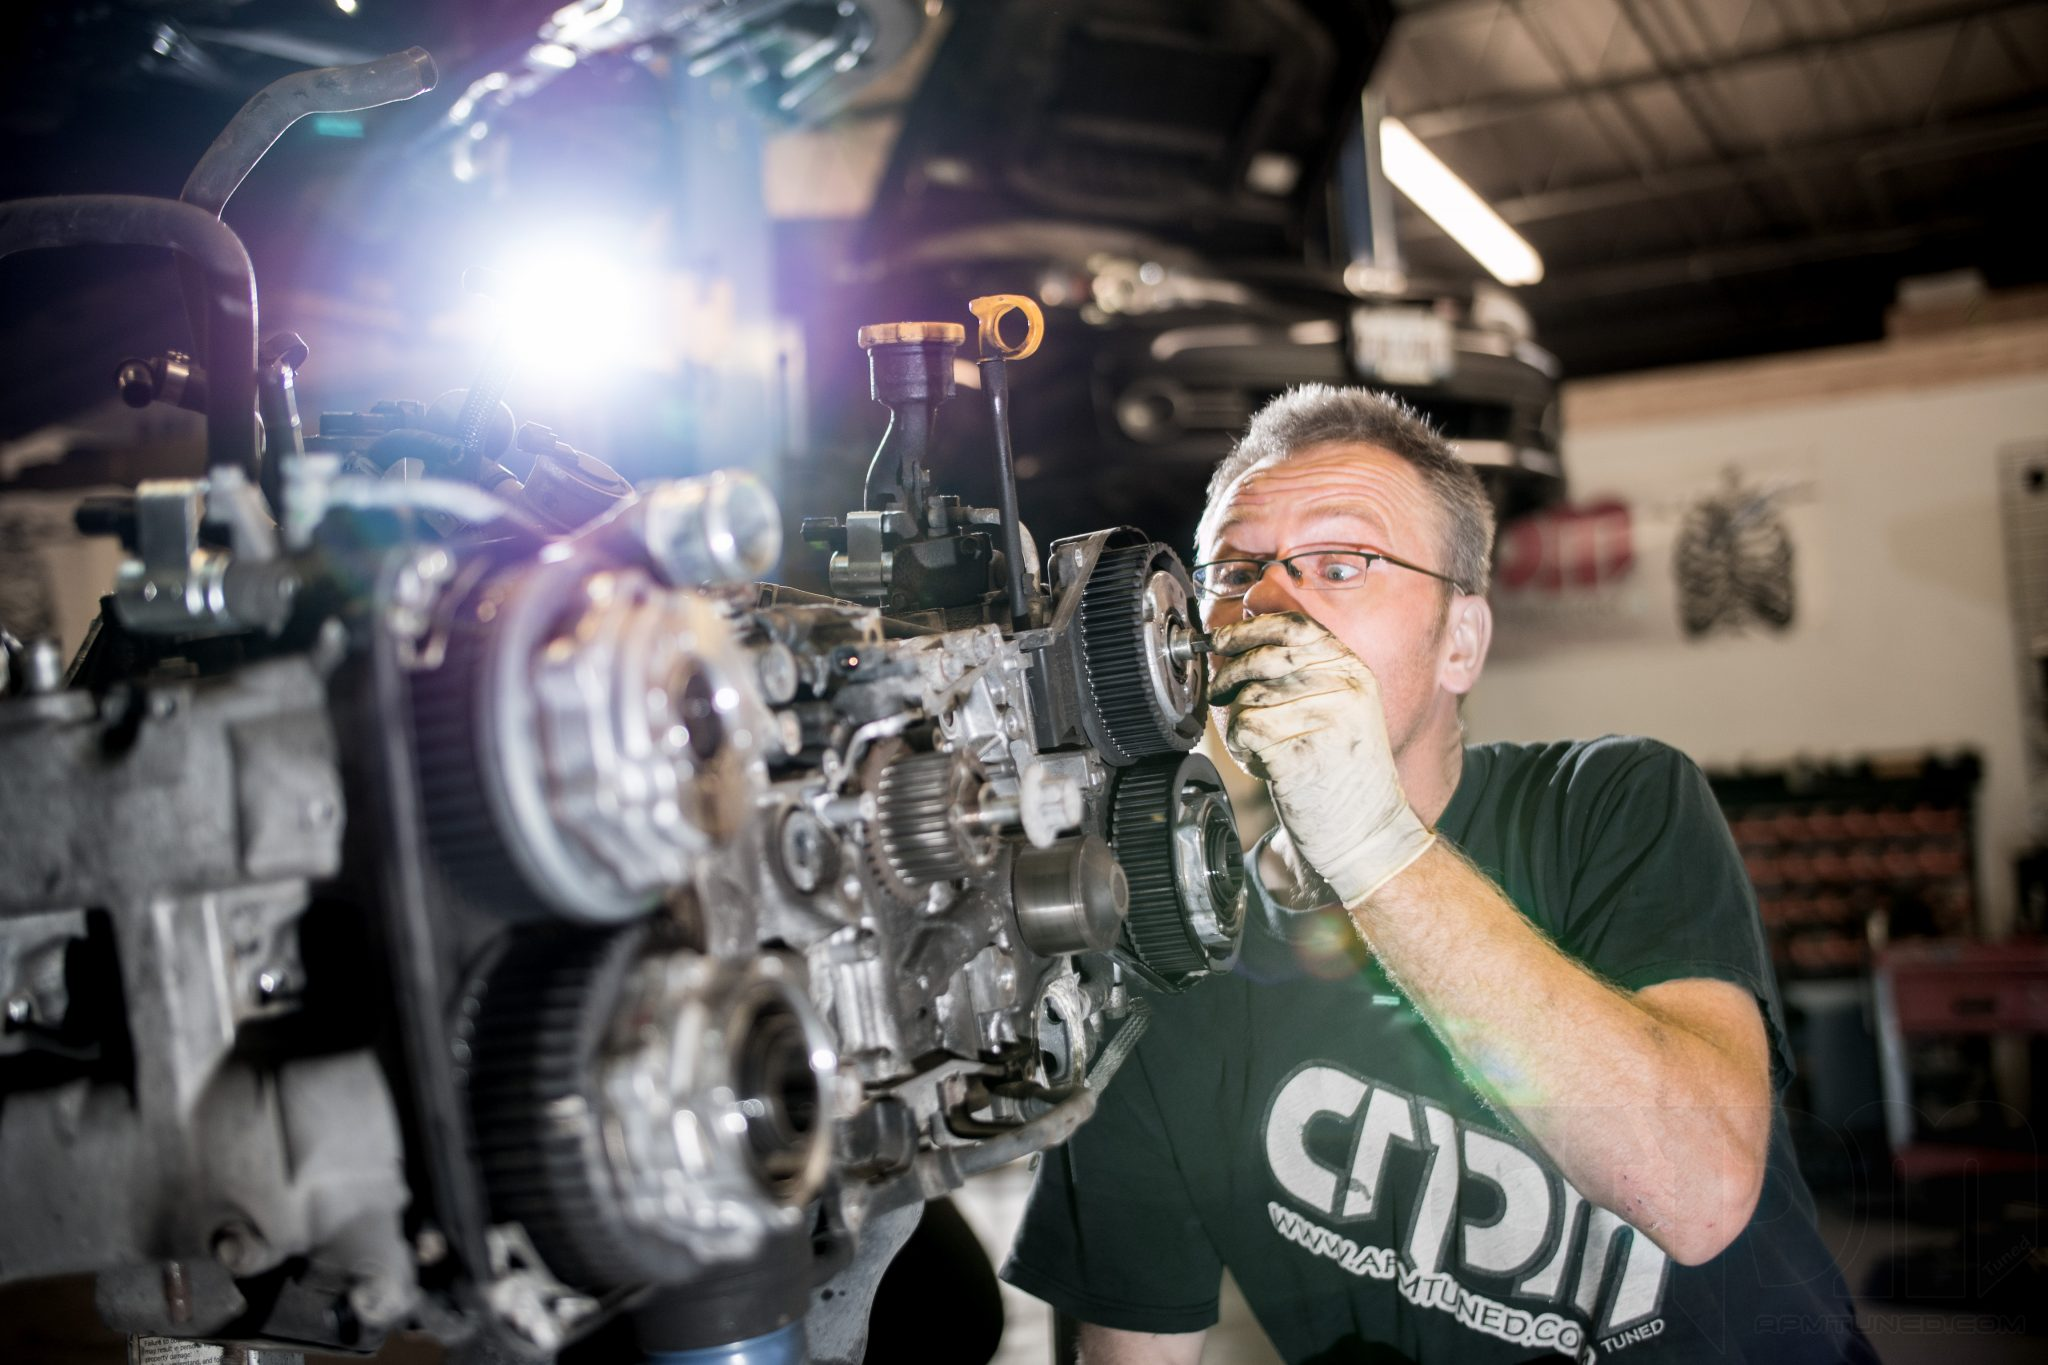 Our master tech disassembling a subaru wrx engine/motor